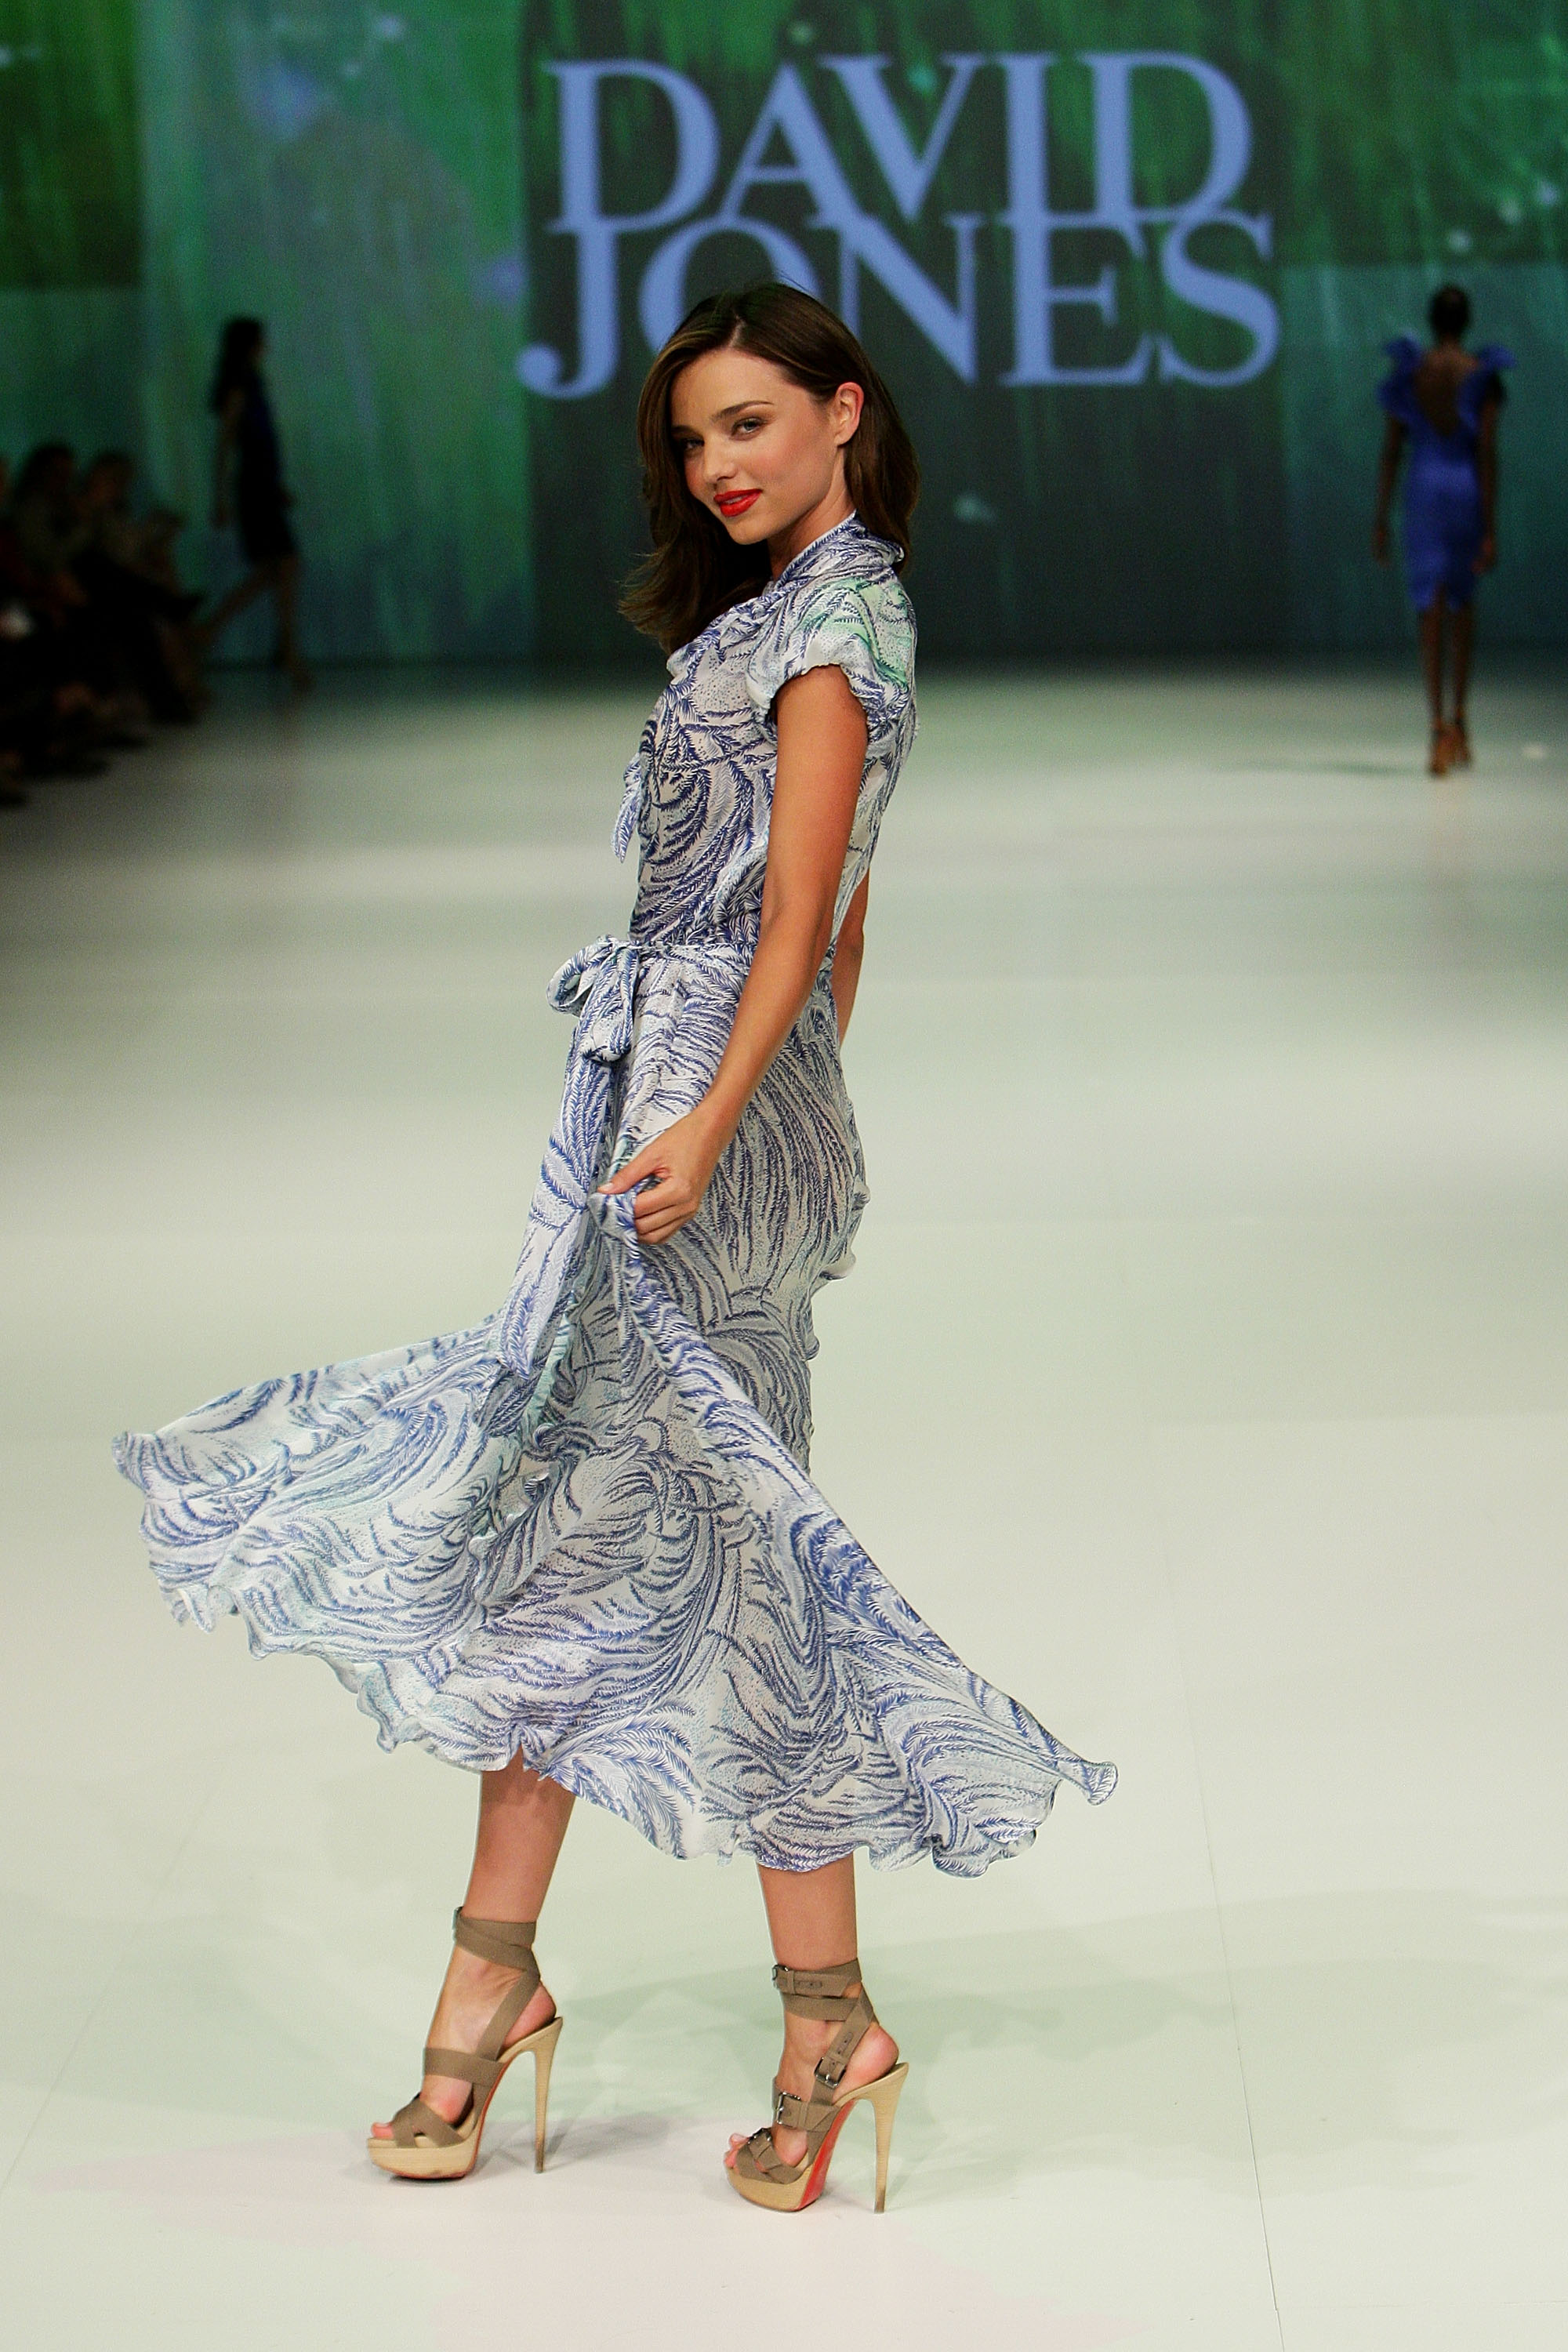 Miranda Kerr on the runway.